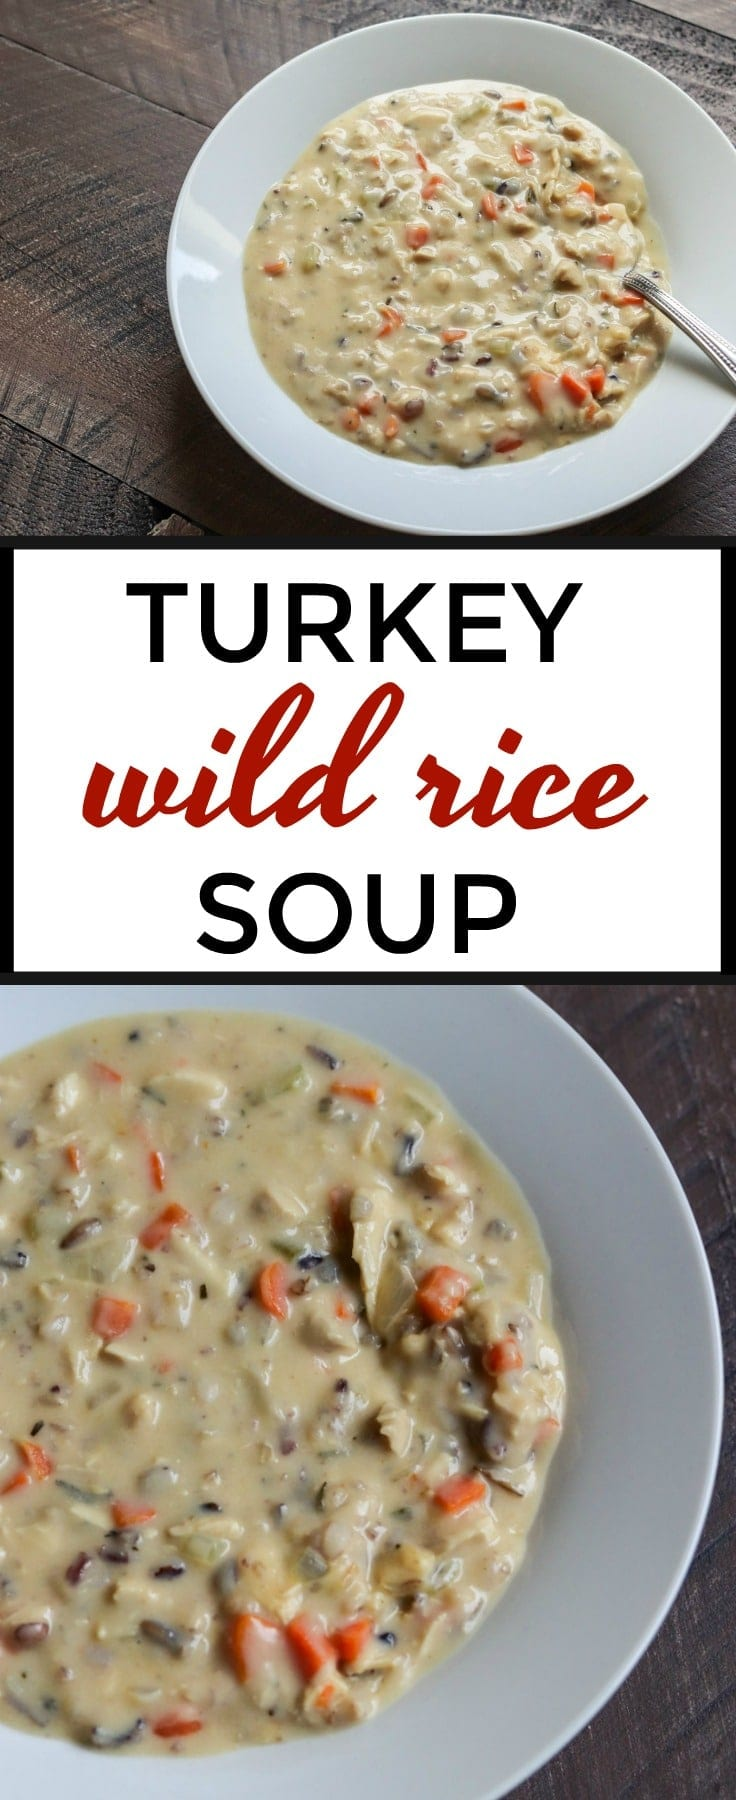 Turkey Wild Rice Soup is a thick and hearty soup that's perfect for a chilly day. Use up leftover turkey, herbs and veggies from your holiday dinner to make this delicious soup!